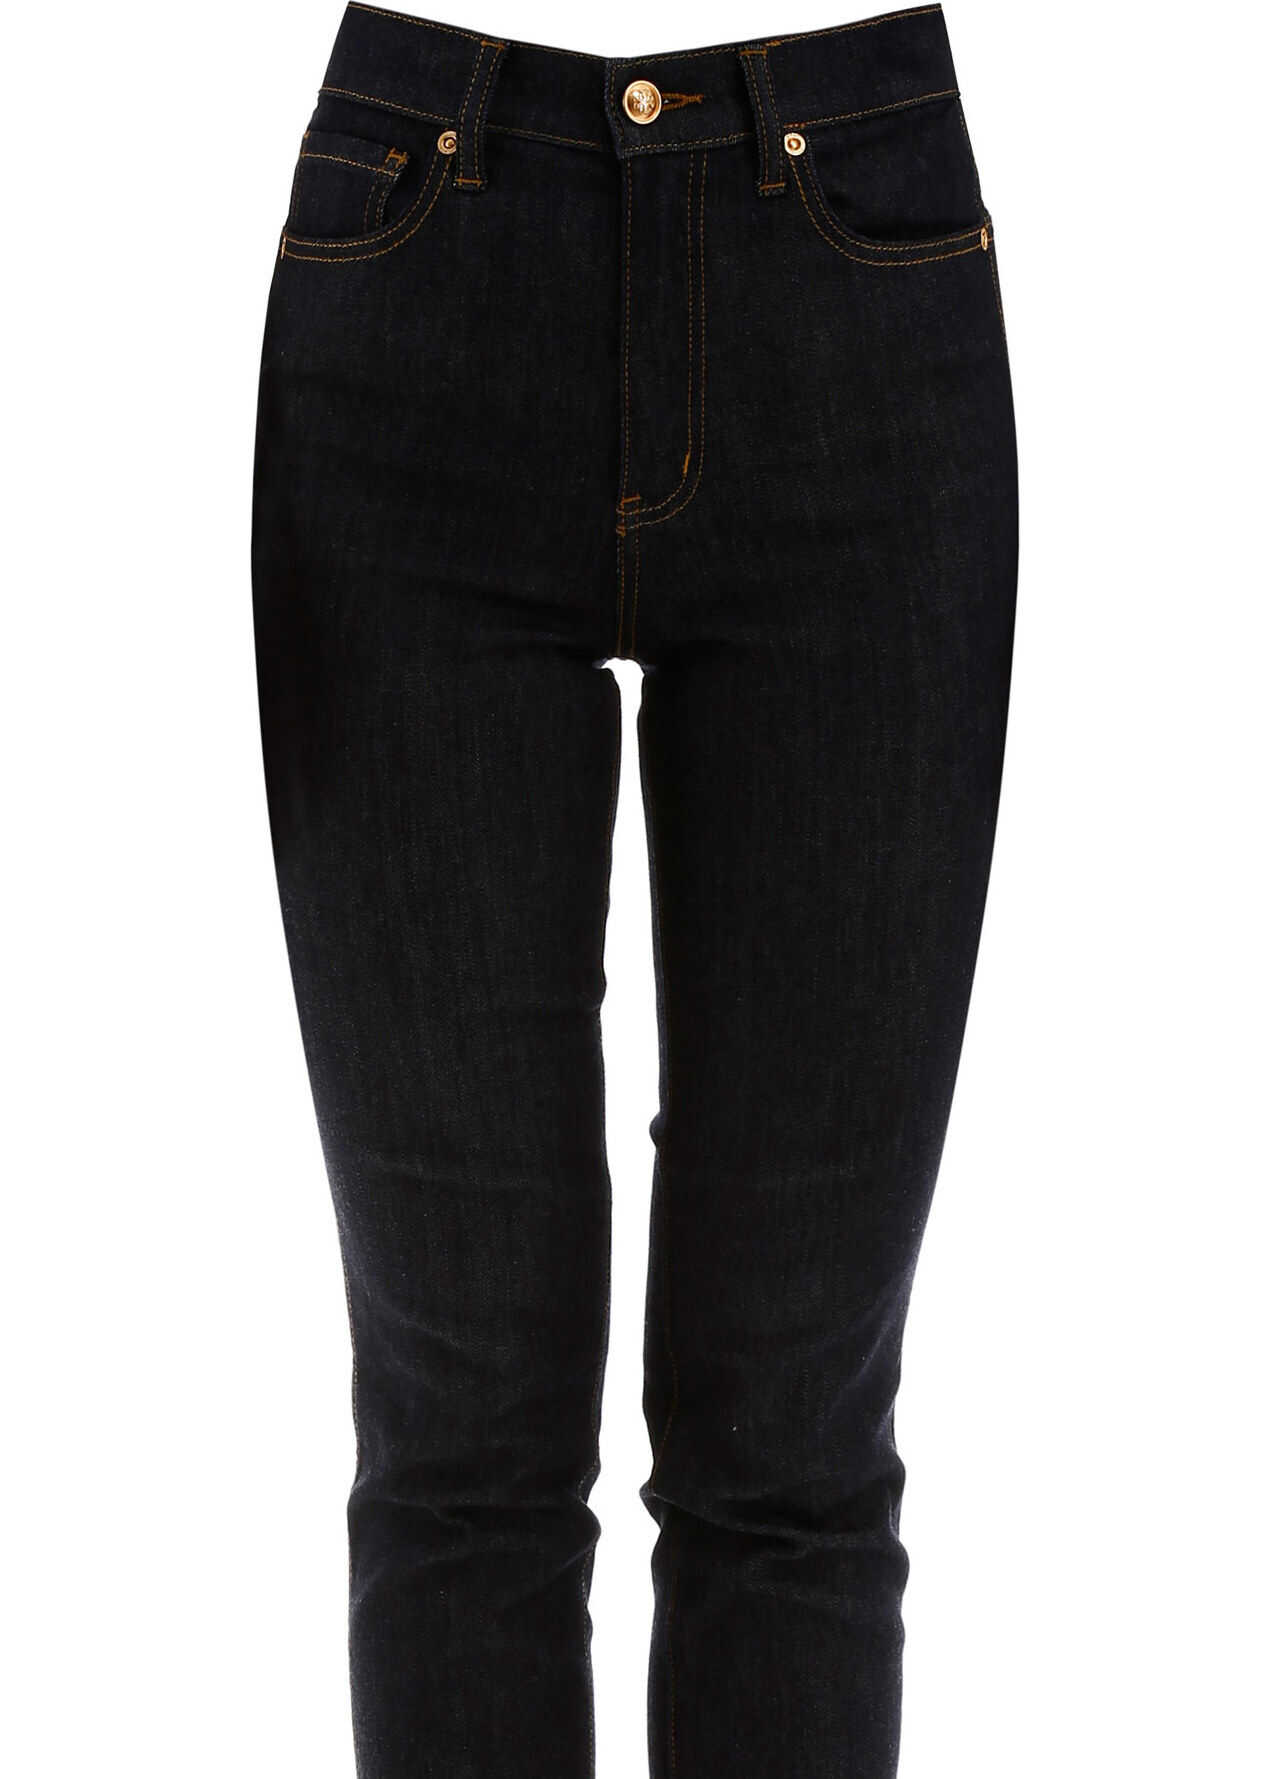 Tory Burch Jeans With Embroidered Logo RESIN RINSE